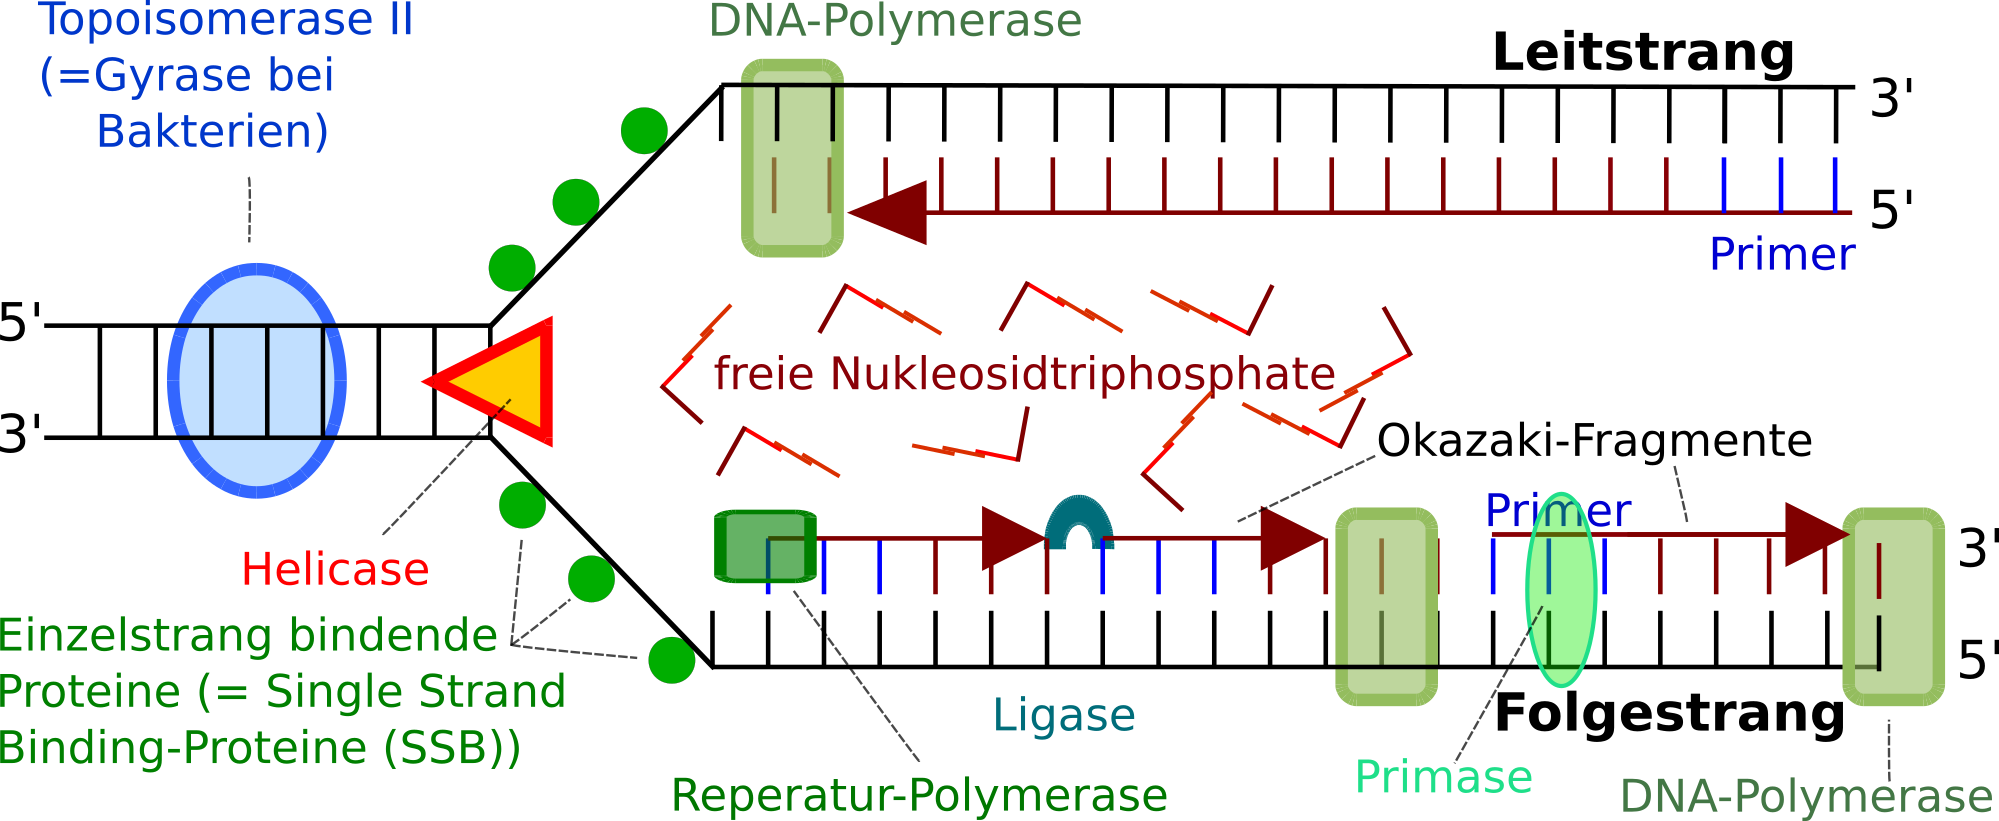 DNA- Replikation im Schema